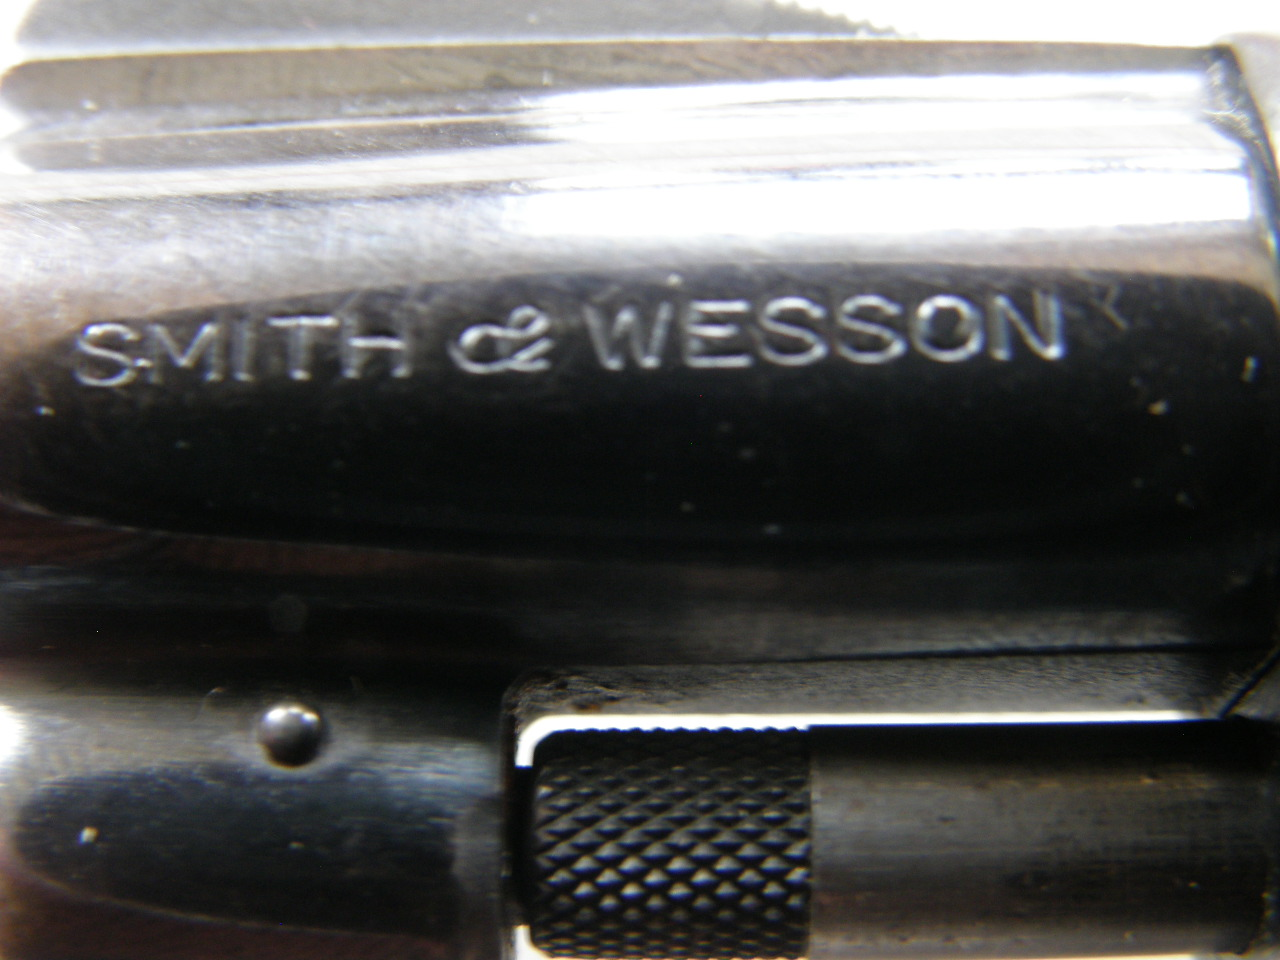 Revolver Smith Wesson Mod. 37 v.č.252578 r. 38 Sp.